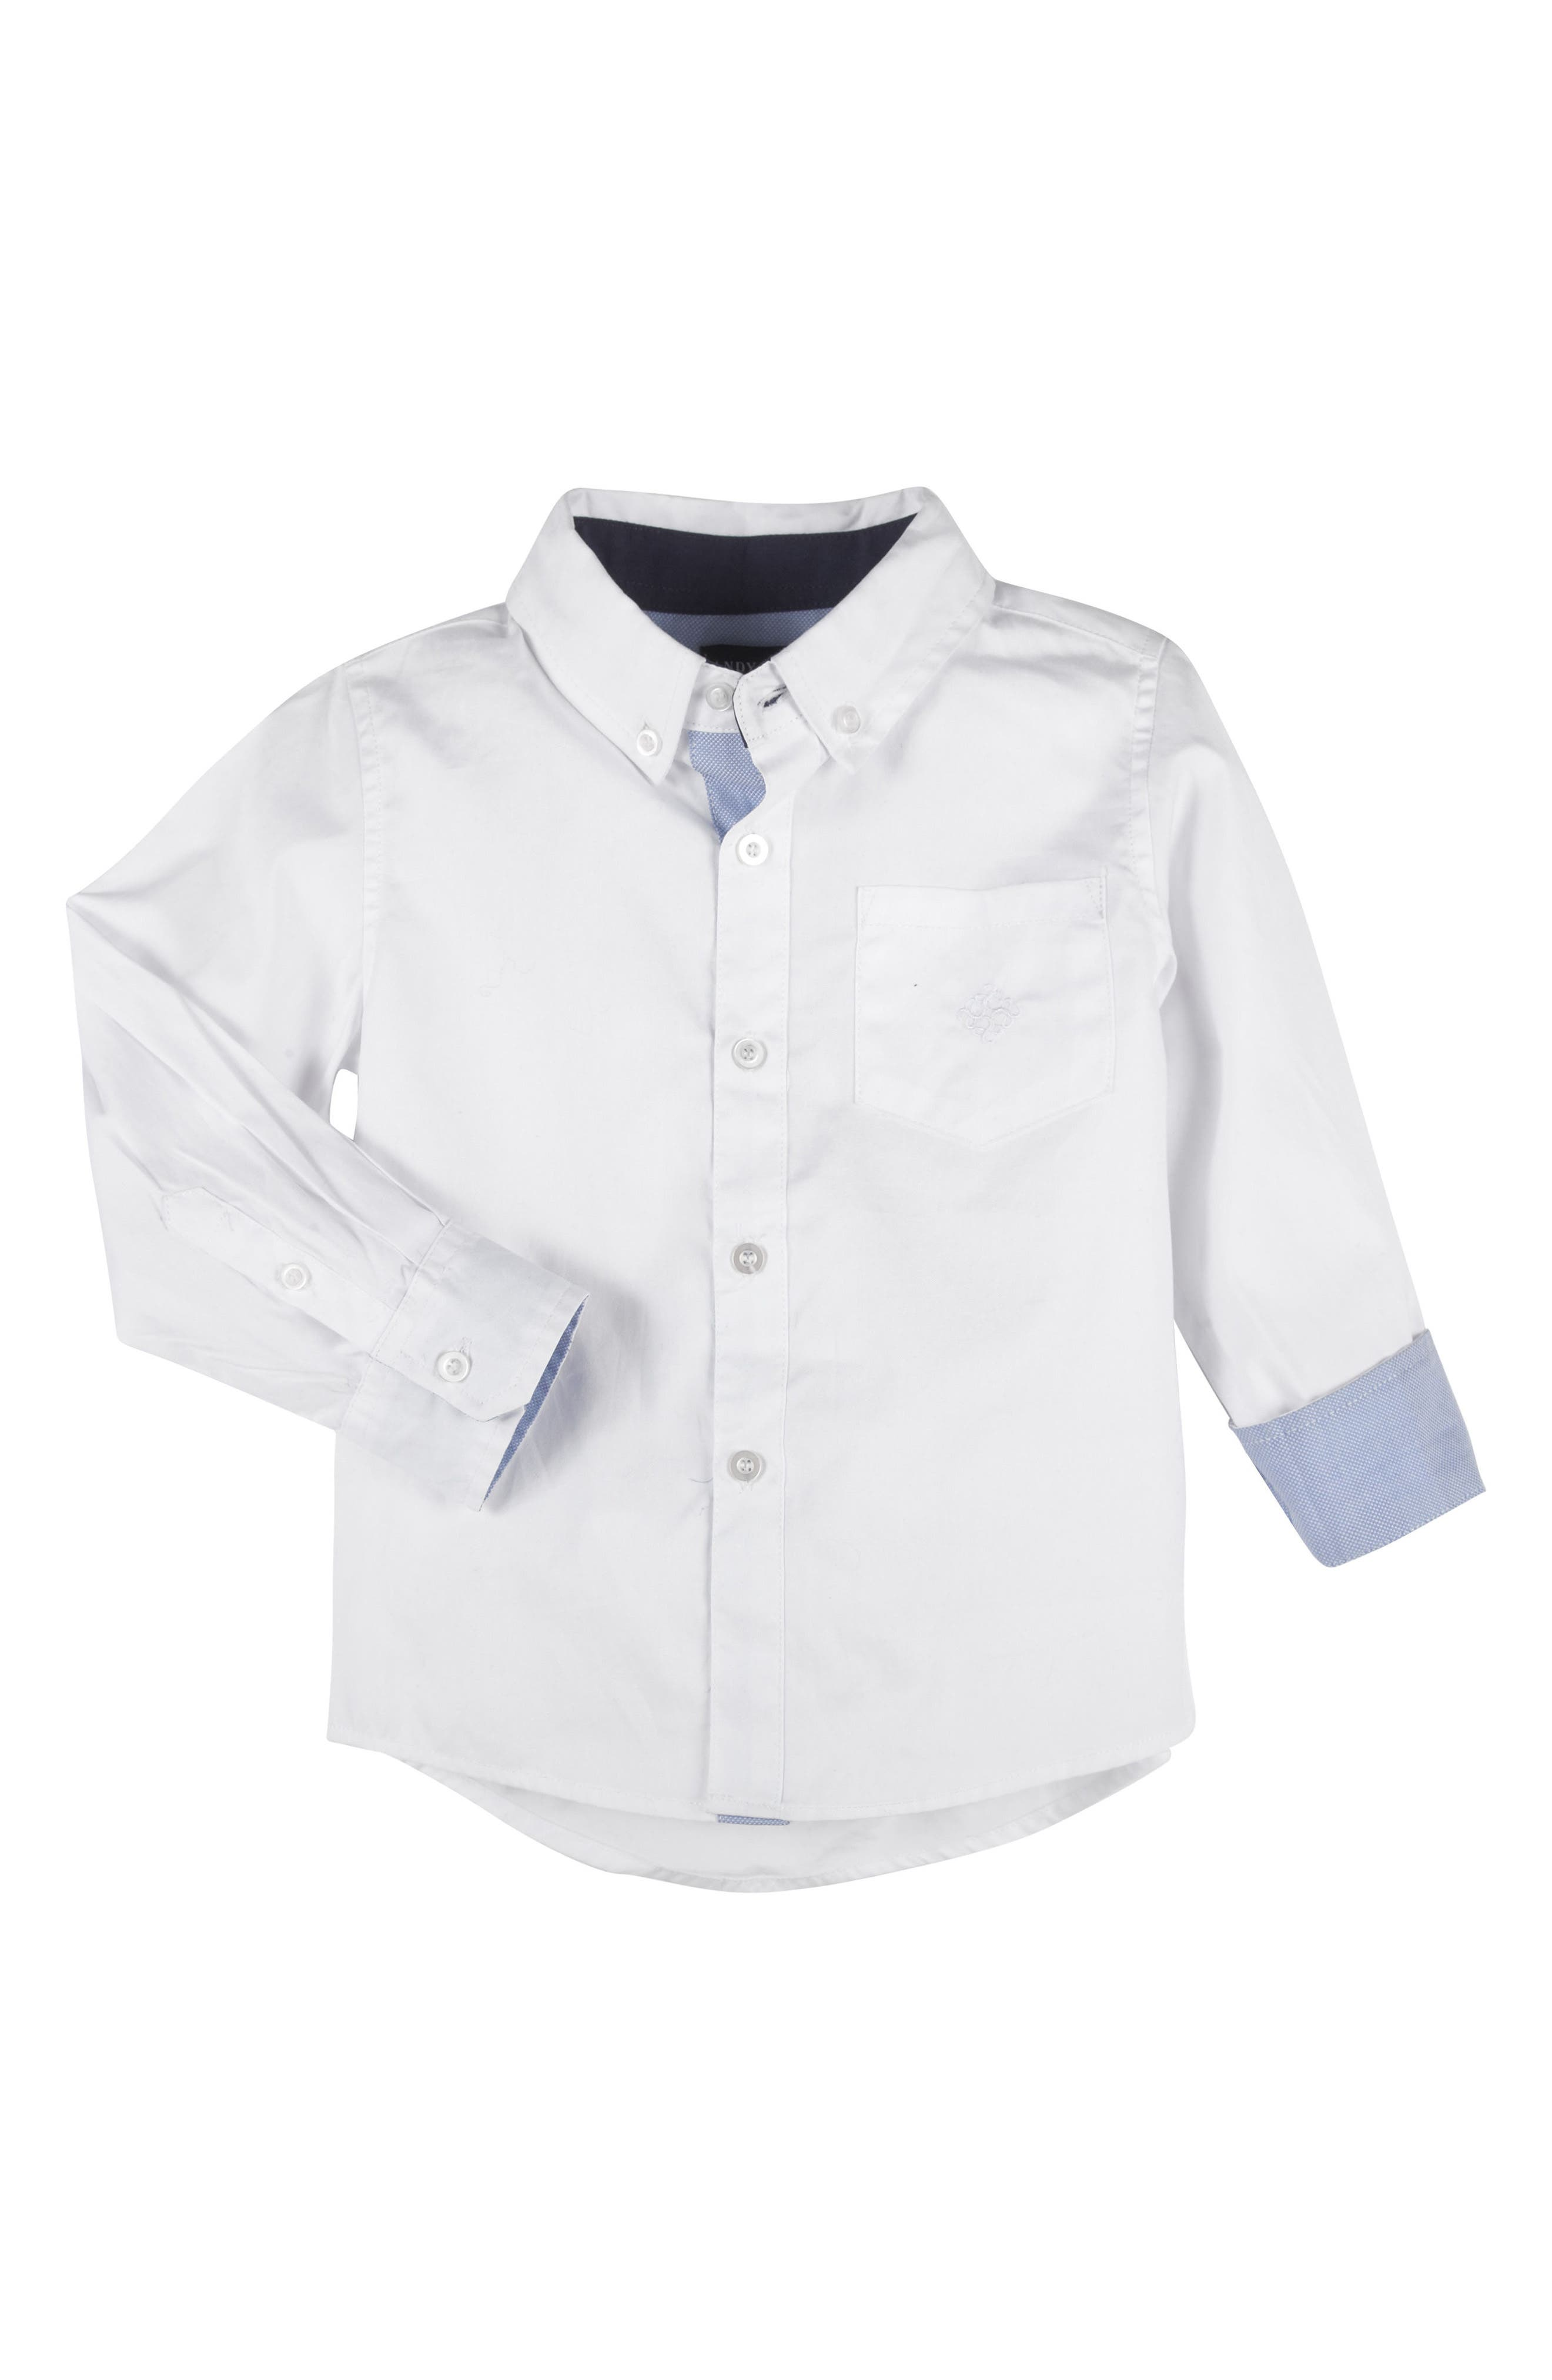 Oxford Shirt,                         Main,                         color, White